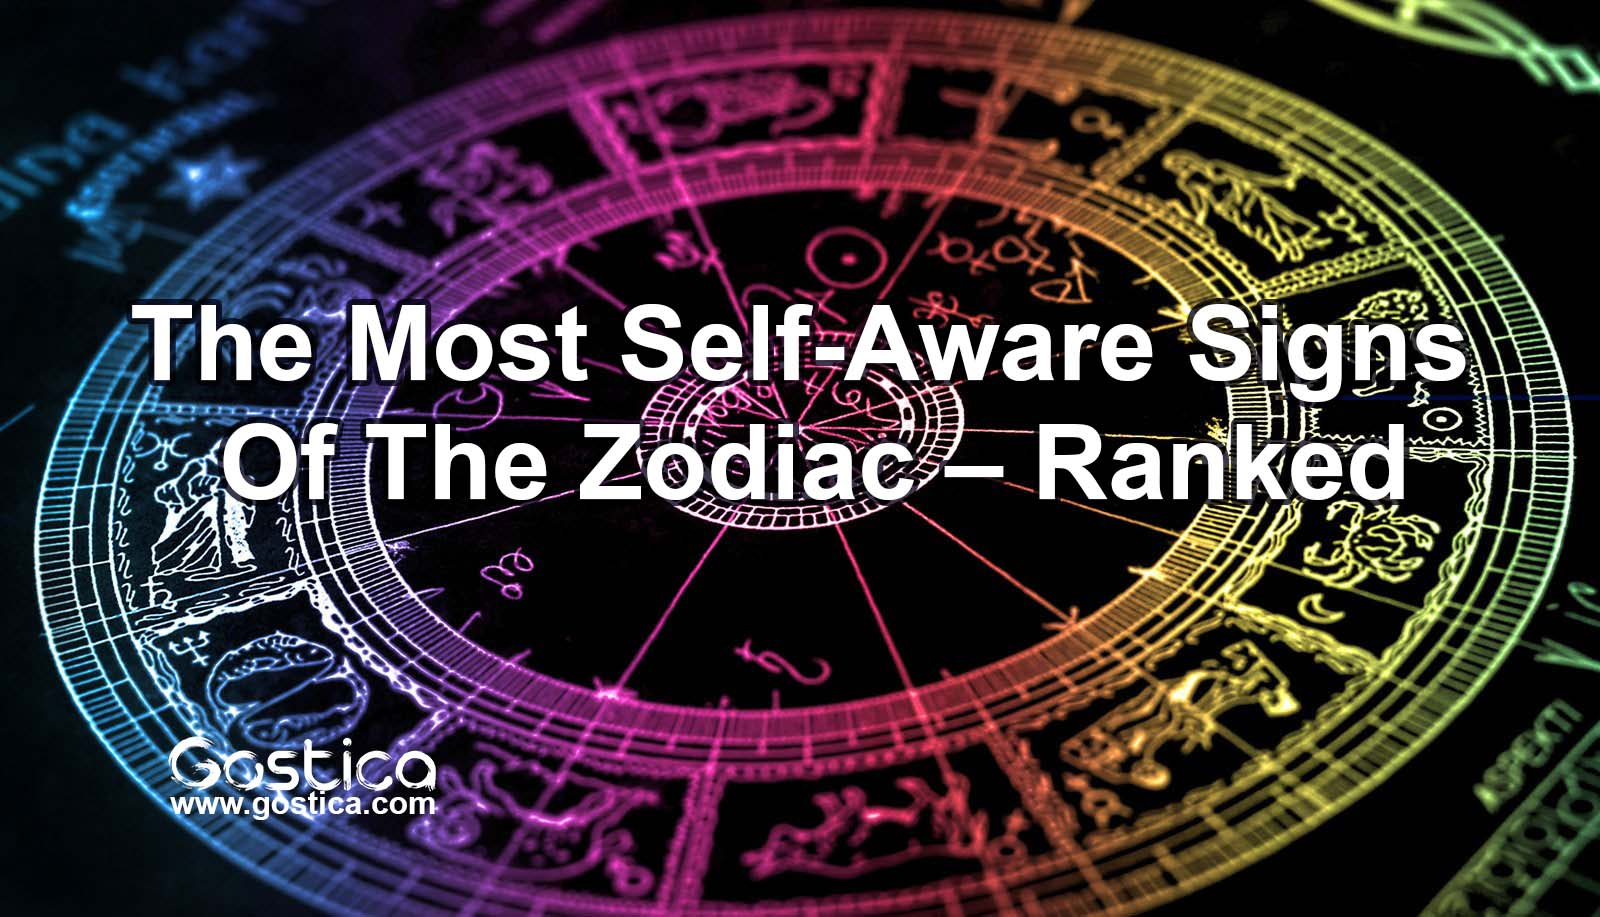 The-Most-Self-Aware-Signs-Of-The-Zodiac-–-Ranked.jpg